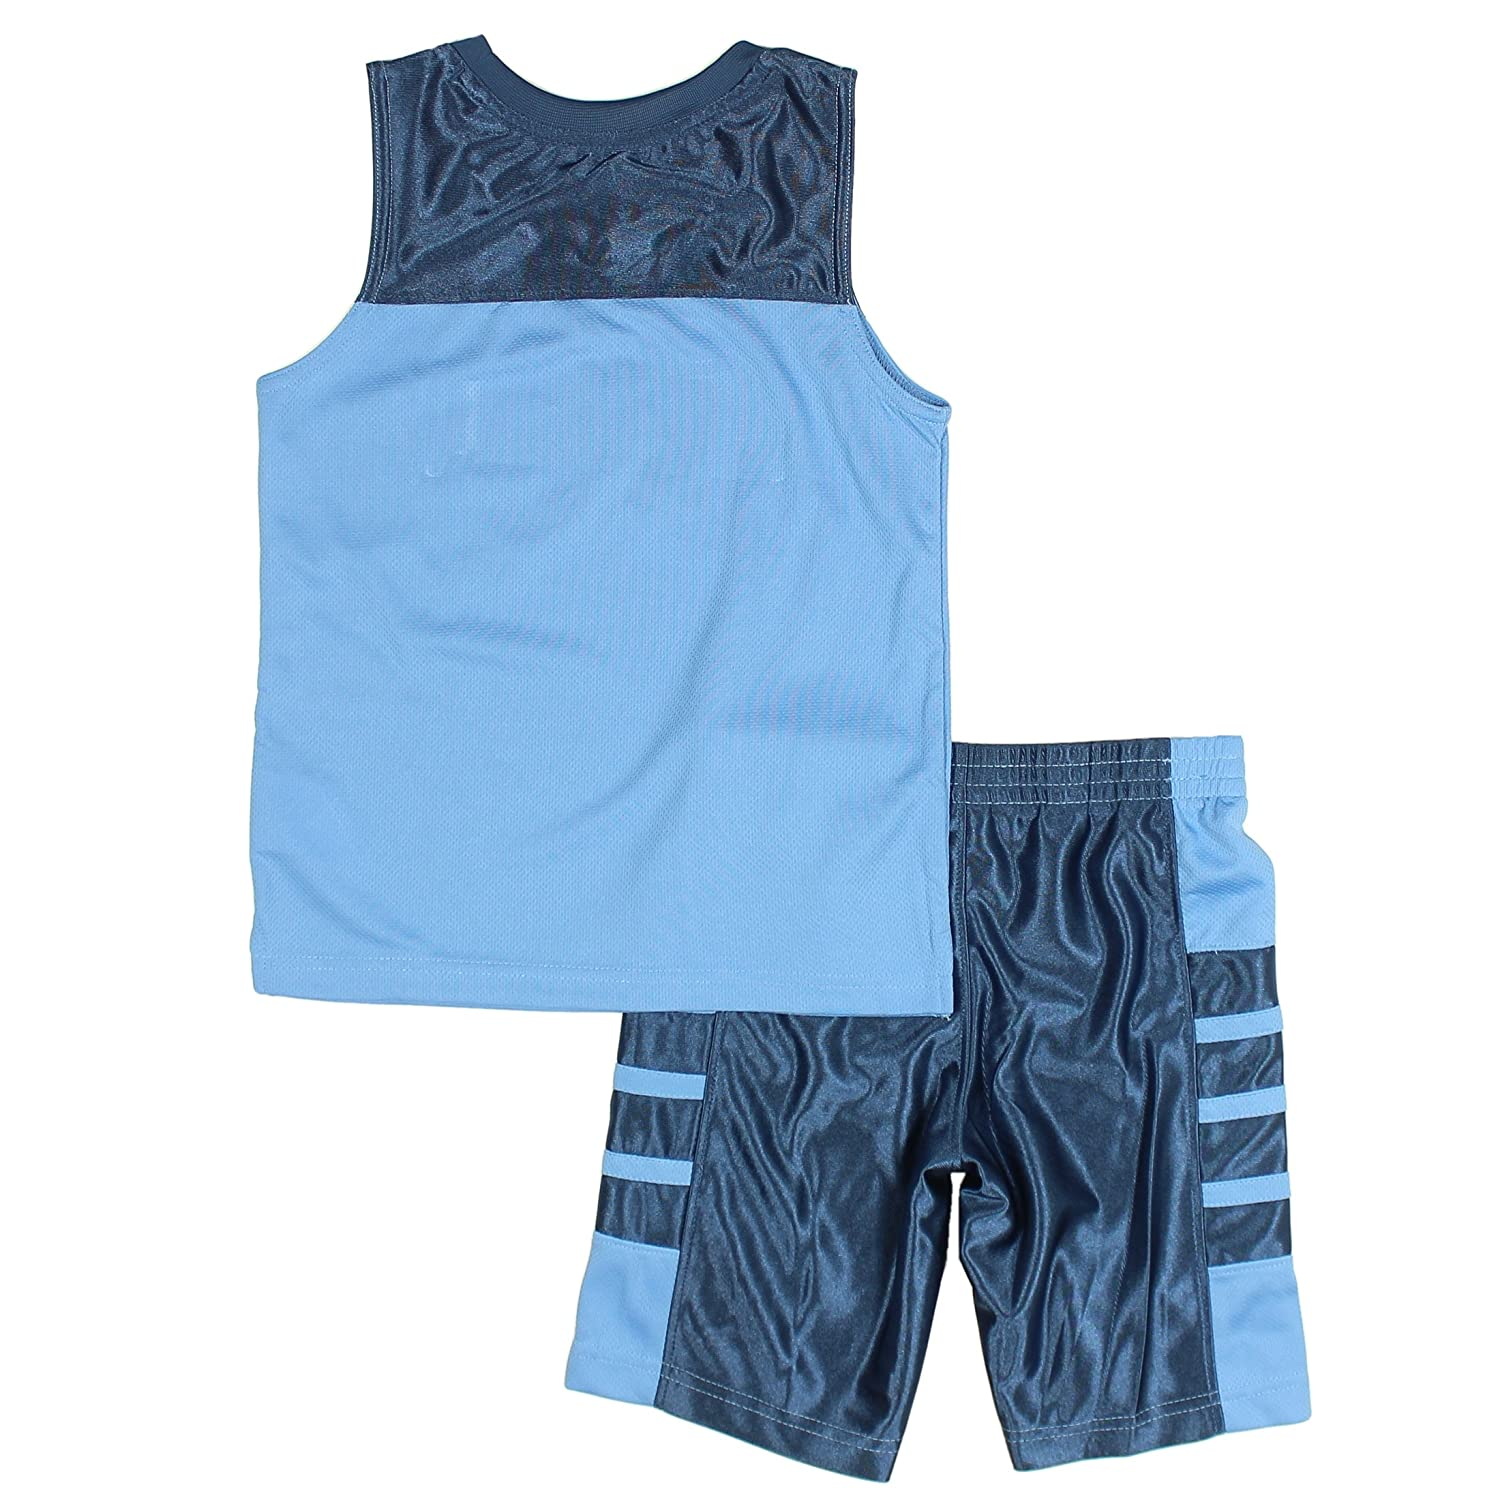 University Blue Nike Air Jordan Baby Boys 2-Piece Shirt and Short Set